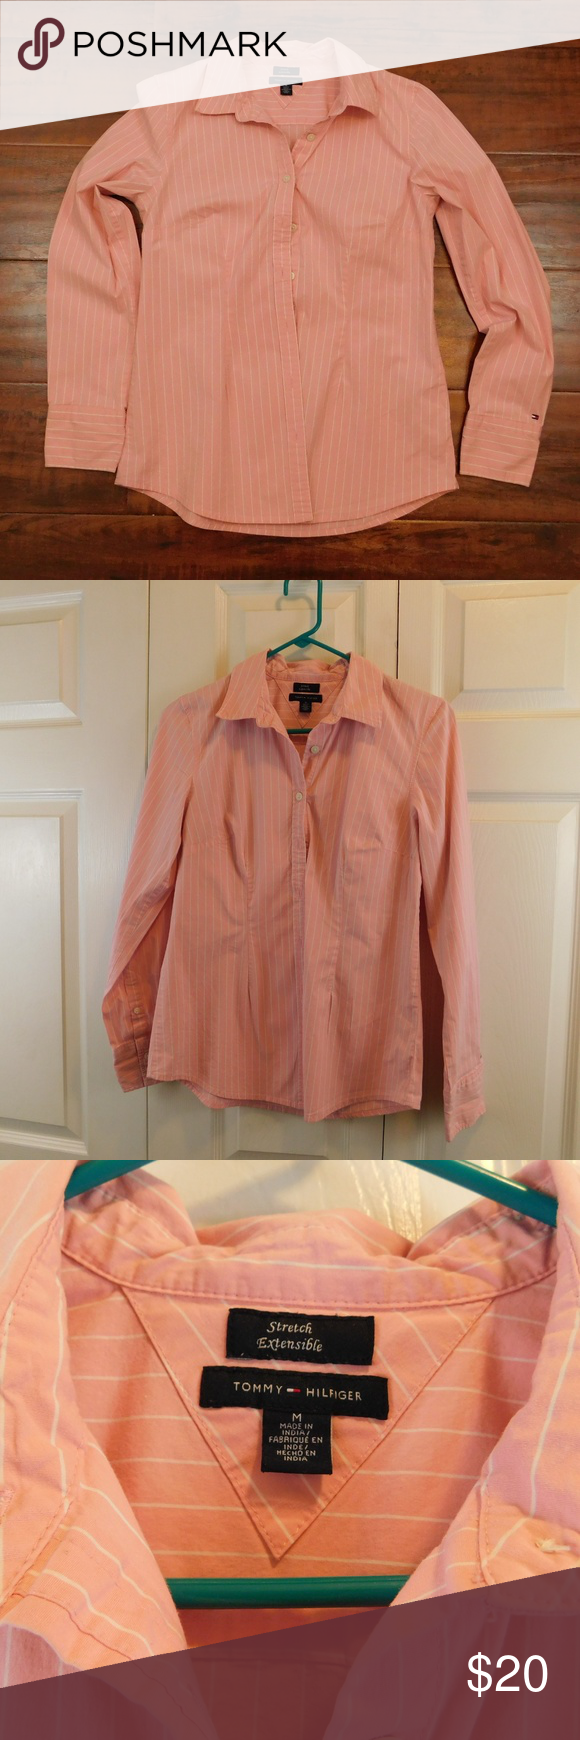 Womens Tommy Hilfiger Stretch Pink White Medium This Women S Tommy Hilfiger Pink Shirt With White Stripes Is In Excelle Tommy Hilfiger Hilfiger Colorful Shirts [ 1740 x 580 Pixel ]